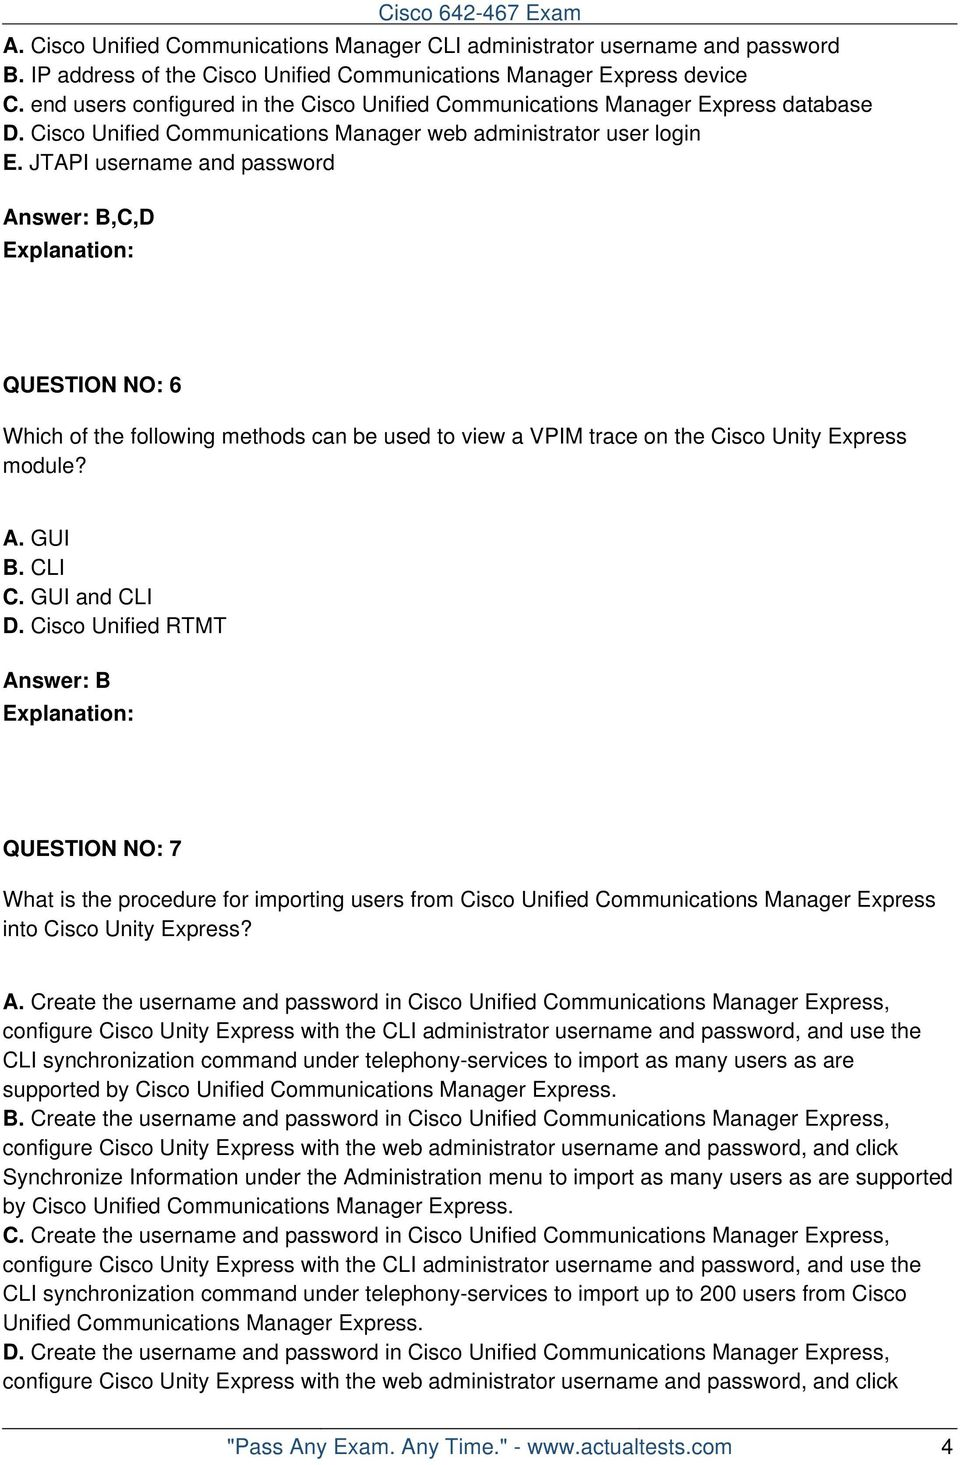 JTAPI username and password Answer: B,C,D QUESTION NO: 6 Which of the following methods can be used to view a VPIM trace on the Cisco Unity Express module? A. GUI B. CLI C. GUI and CLI D.